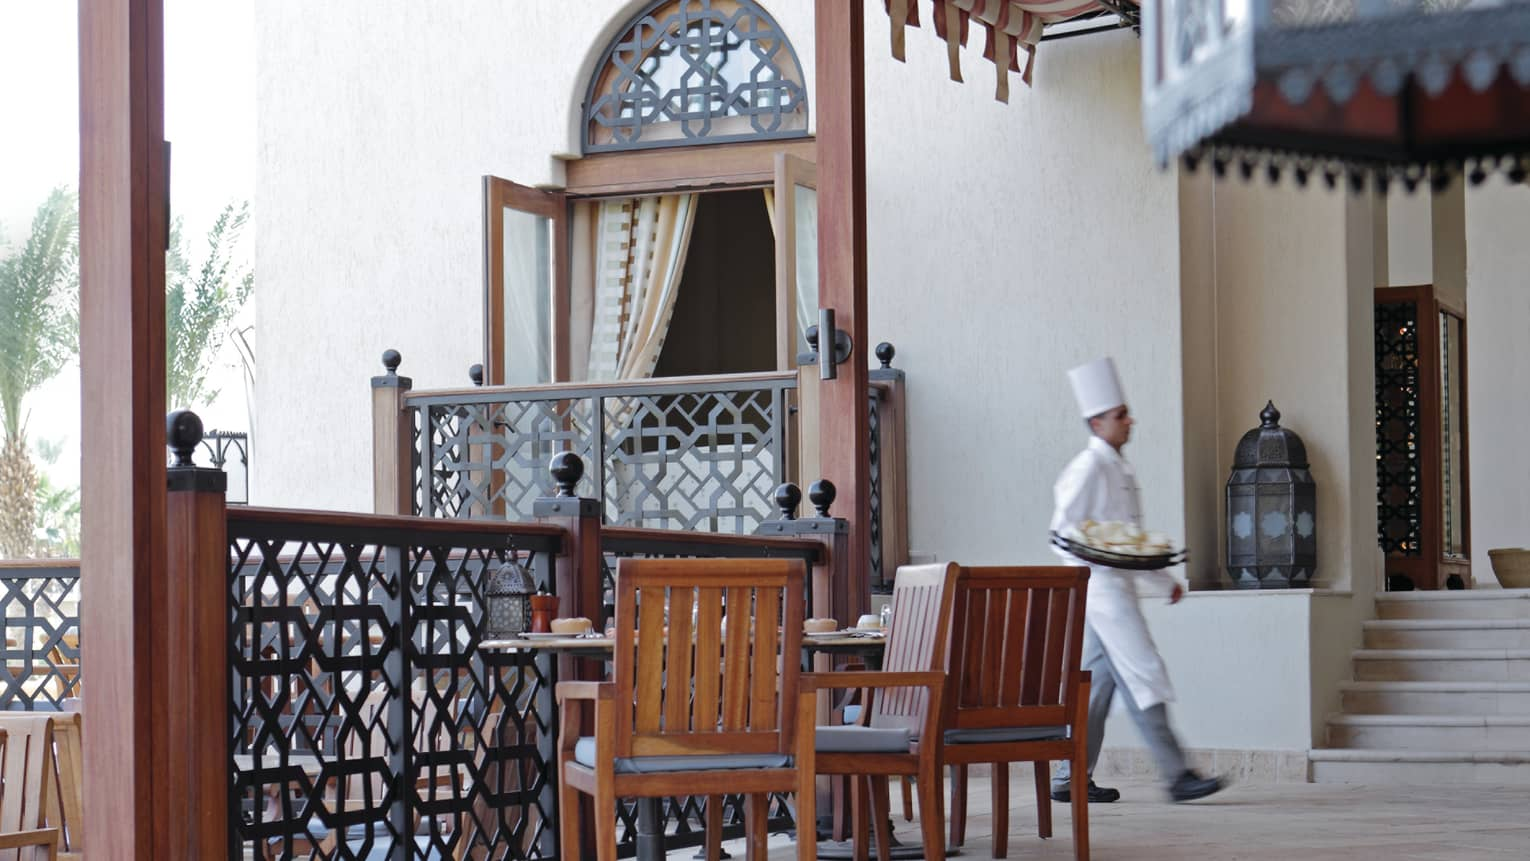 Chef in white uniform walks past wood patio tables, chairs, decorative railing at Arabesque restaurant